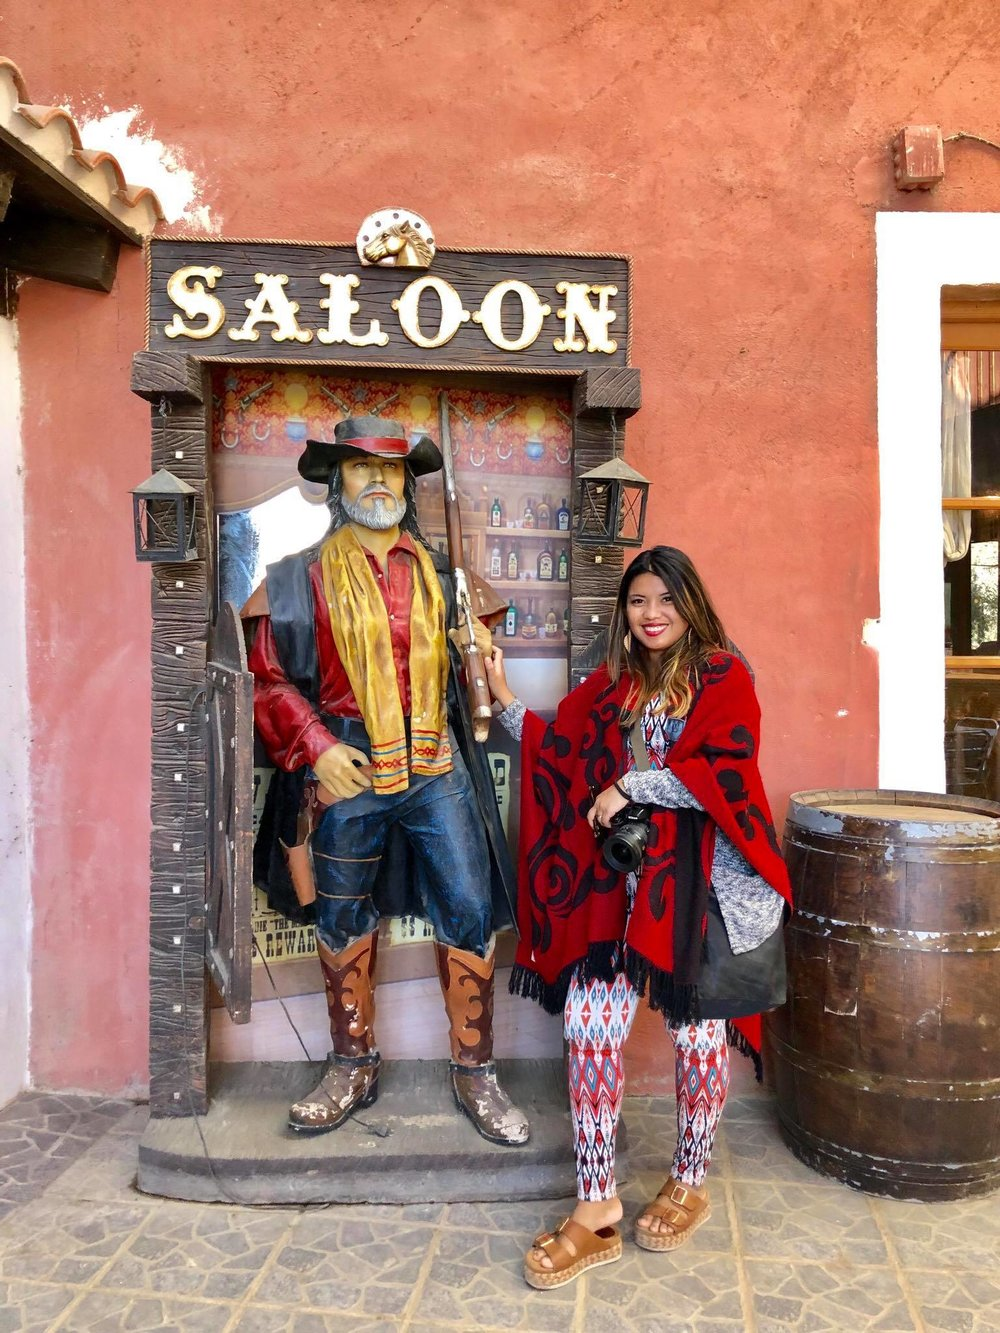 Kach Solo Travels in 2019 Full and fun itinerary here in Almeria, South of Spain25.jpg